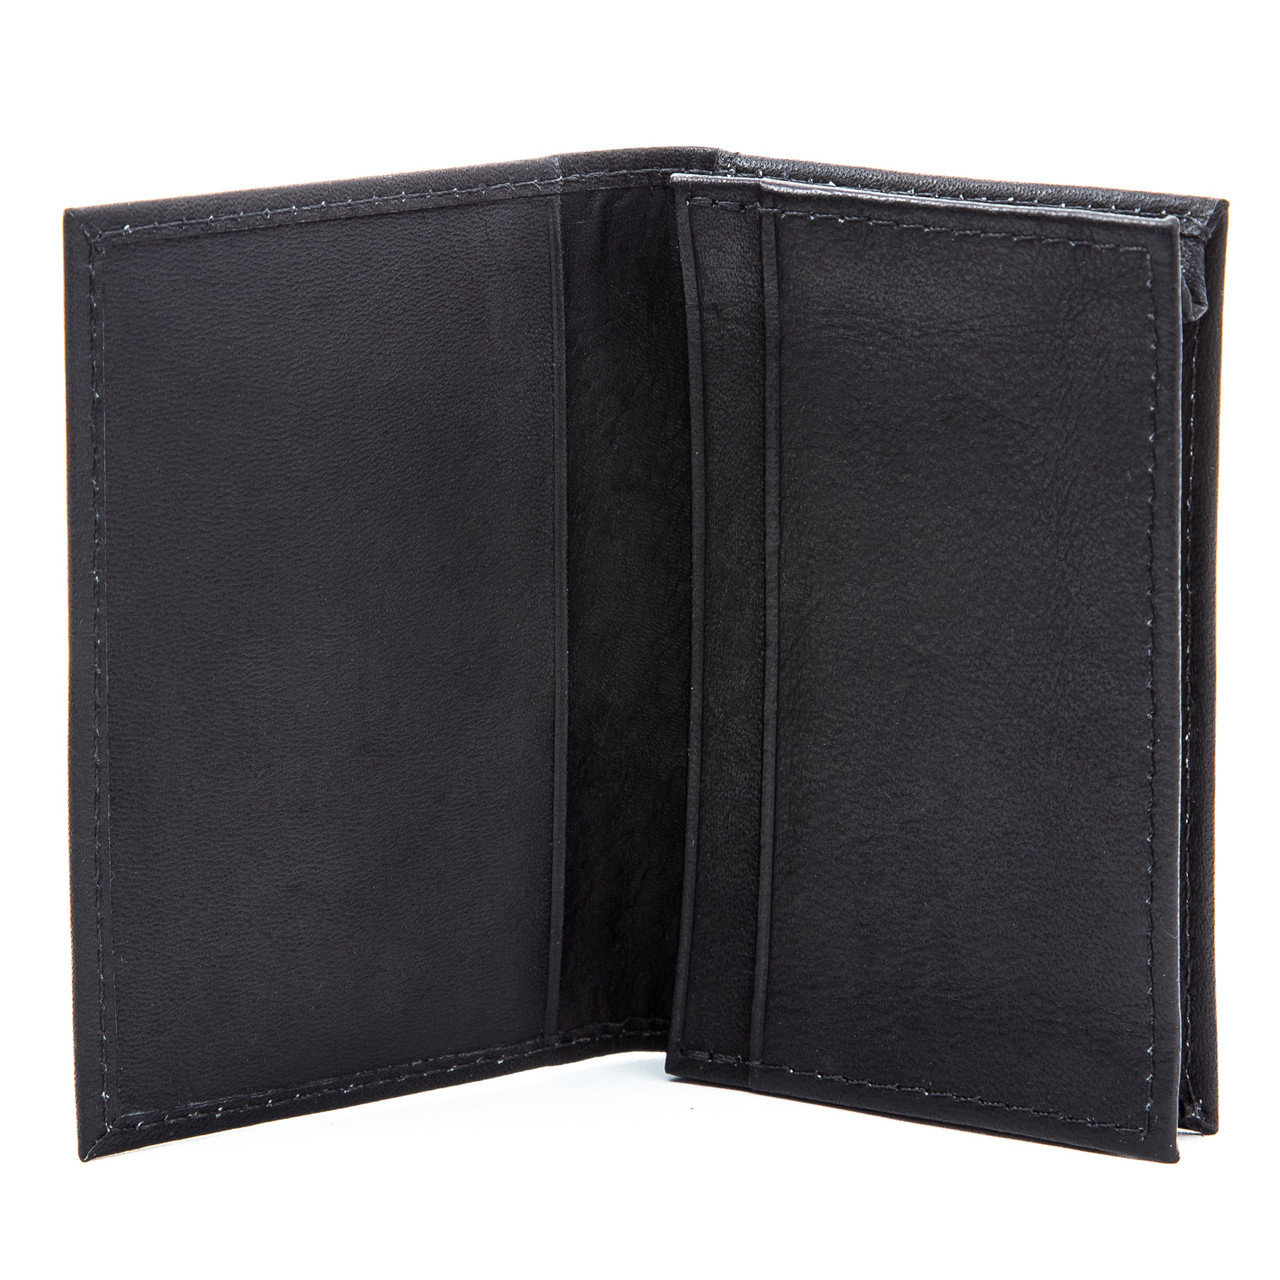 Carlo - Business and Credit Card Case Wallet - Open Front View, Black